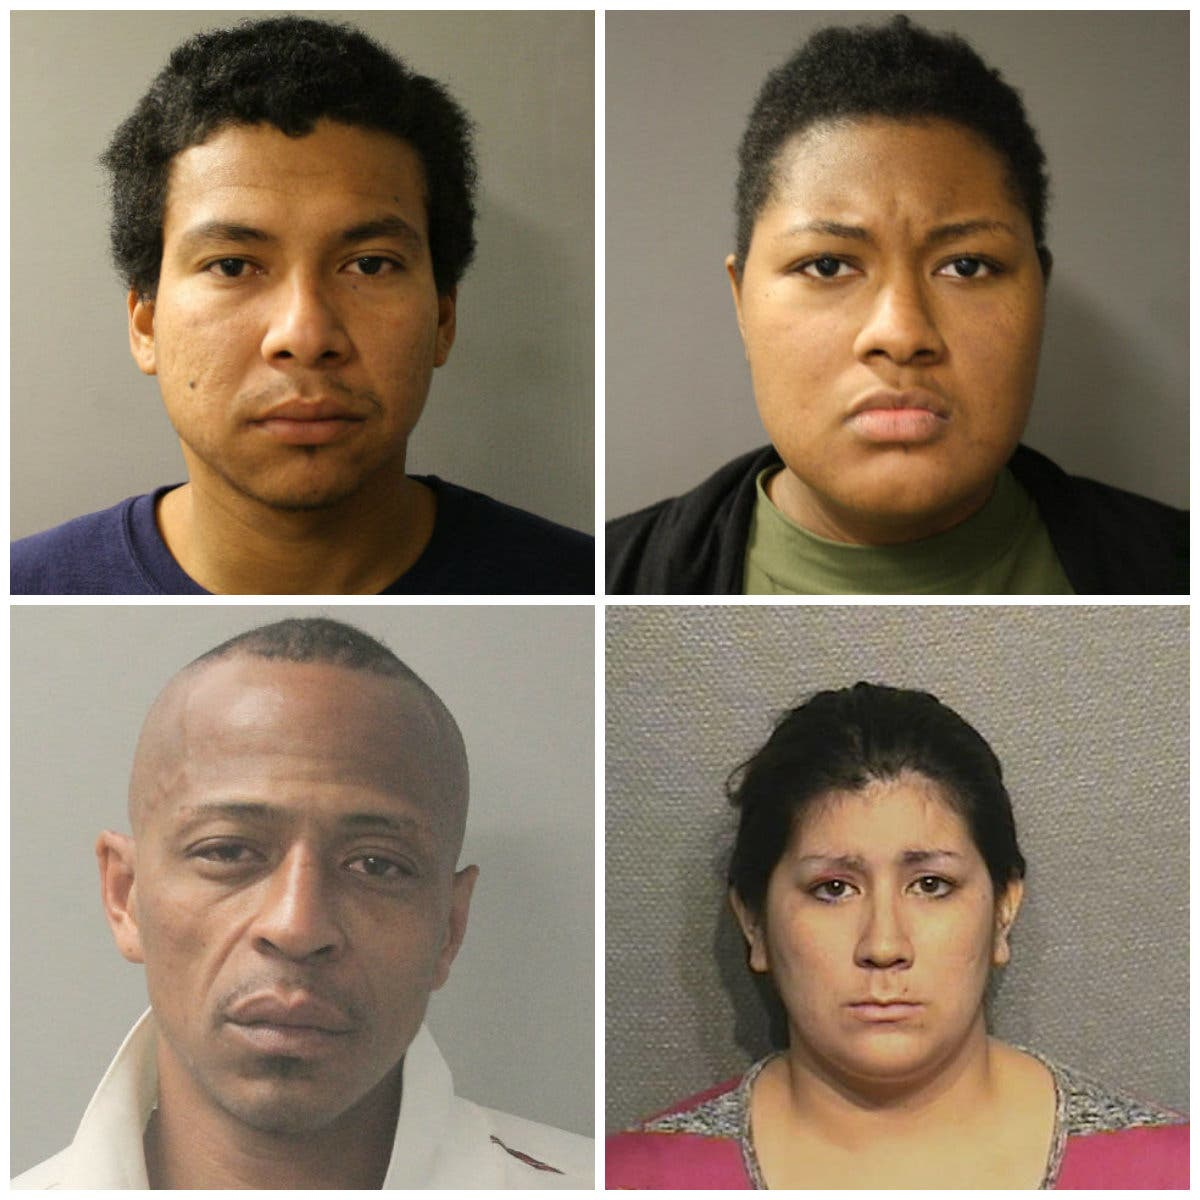 Wanted By The Law: The Top 10 Most Wanted Criminals | Houston, TX Patch